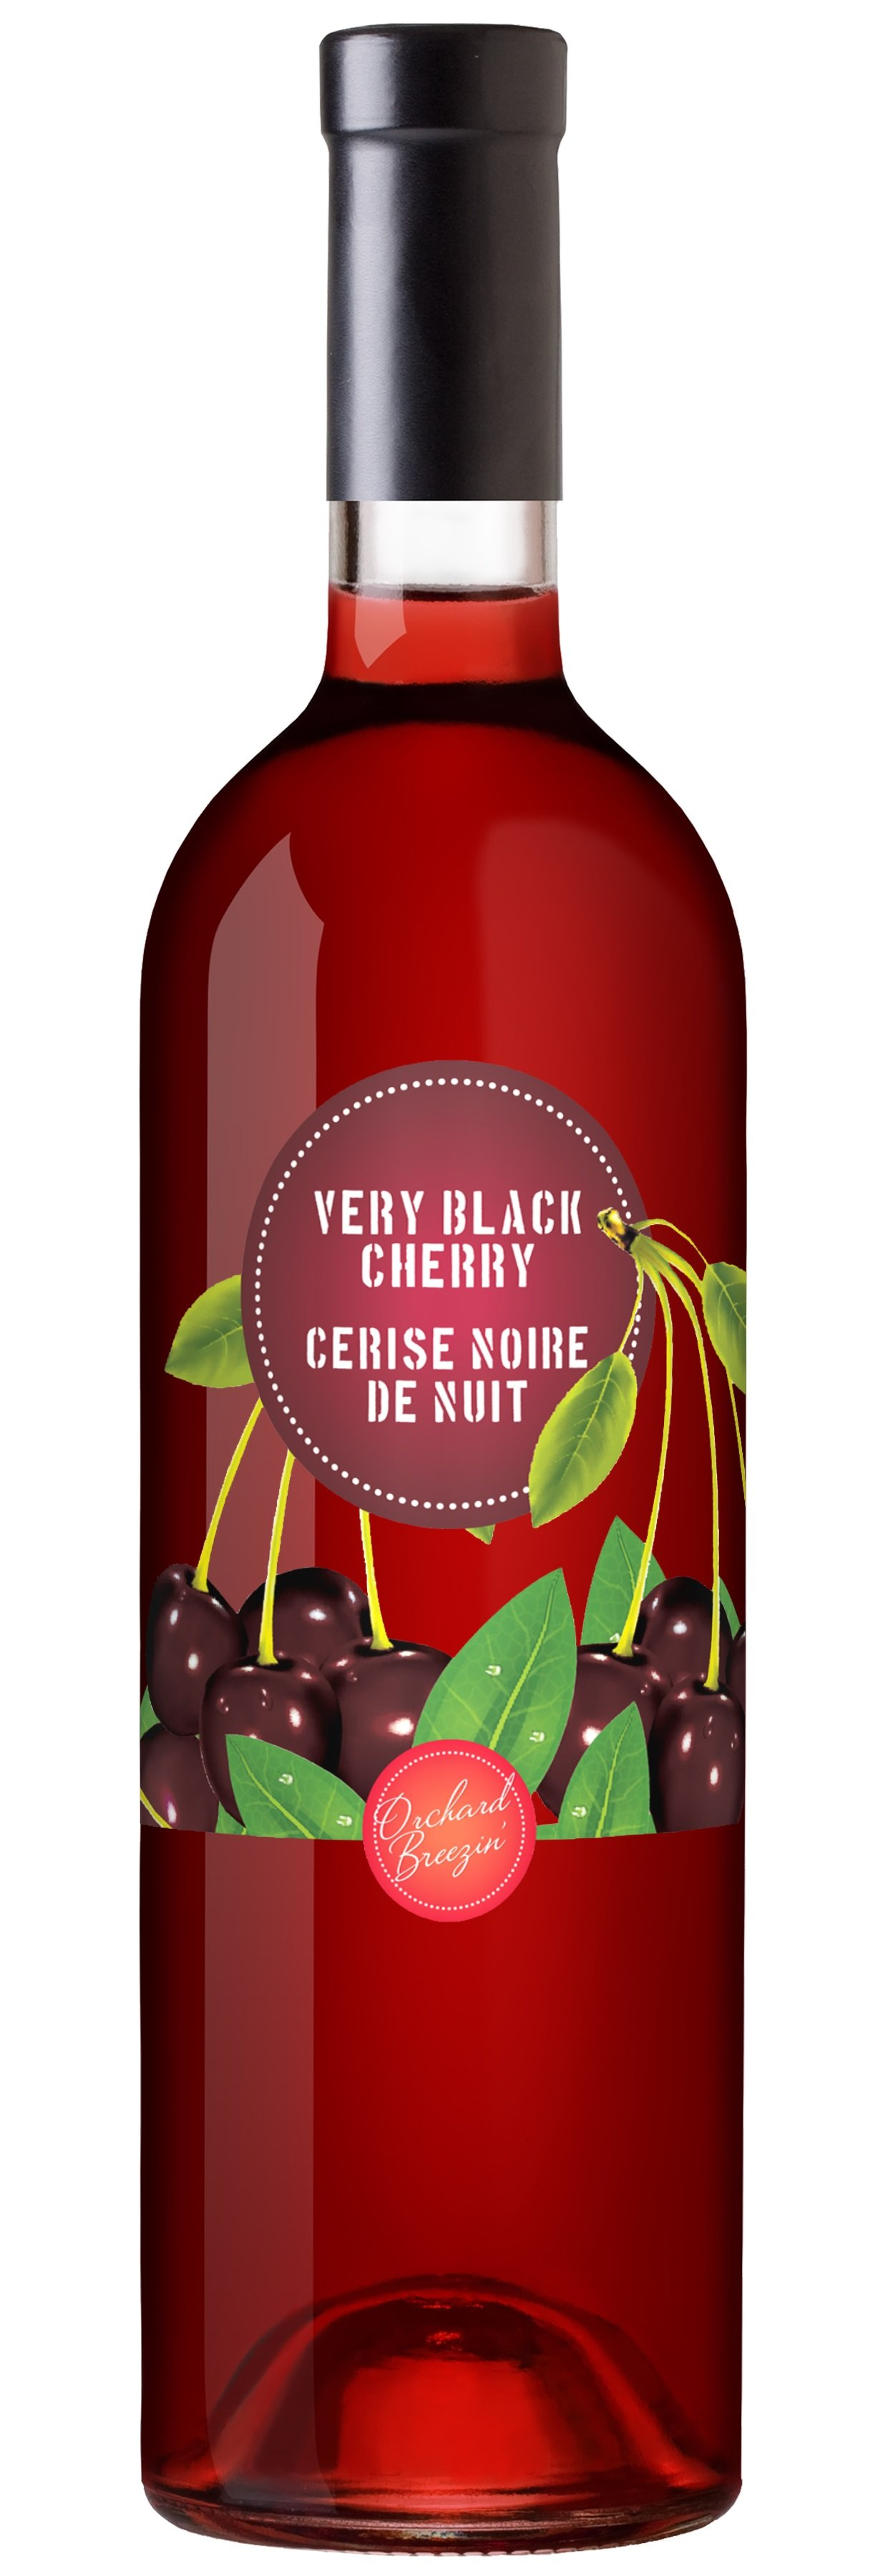 https://0901.nccdn.net/4_2/000/000/046/6ea/OB_Bottle_VeryBlackCherry.jpg